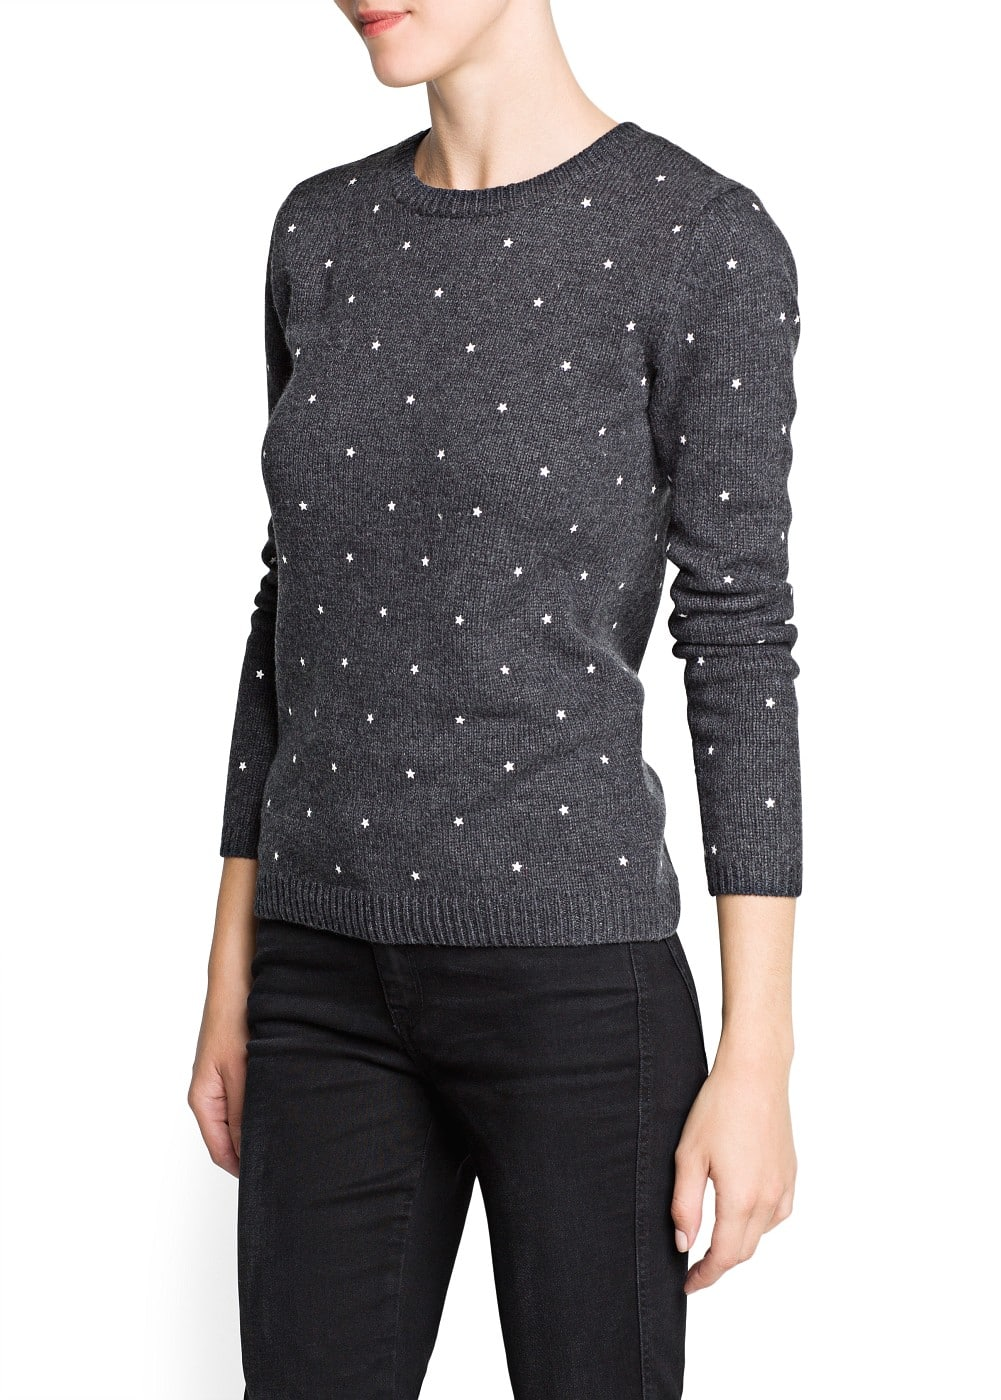 Star appliqué sweater